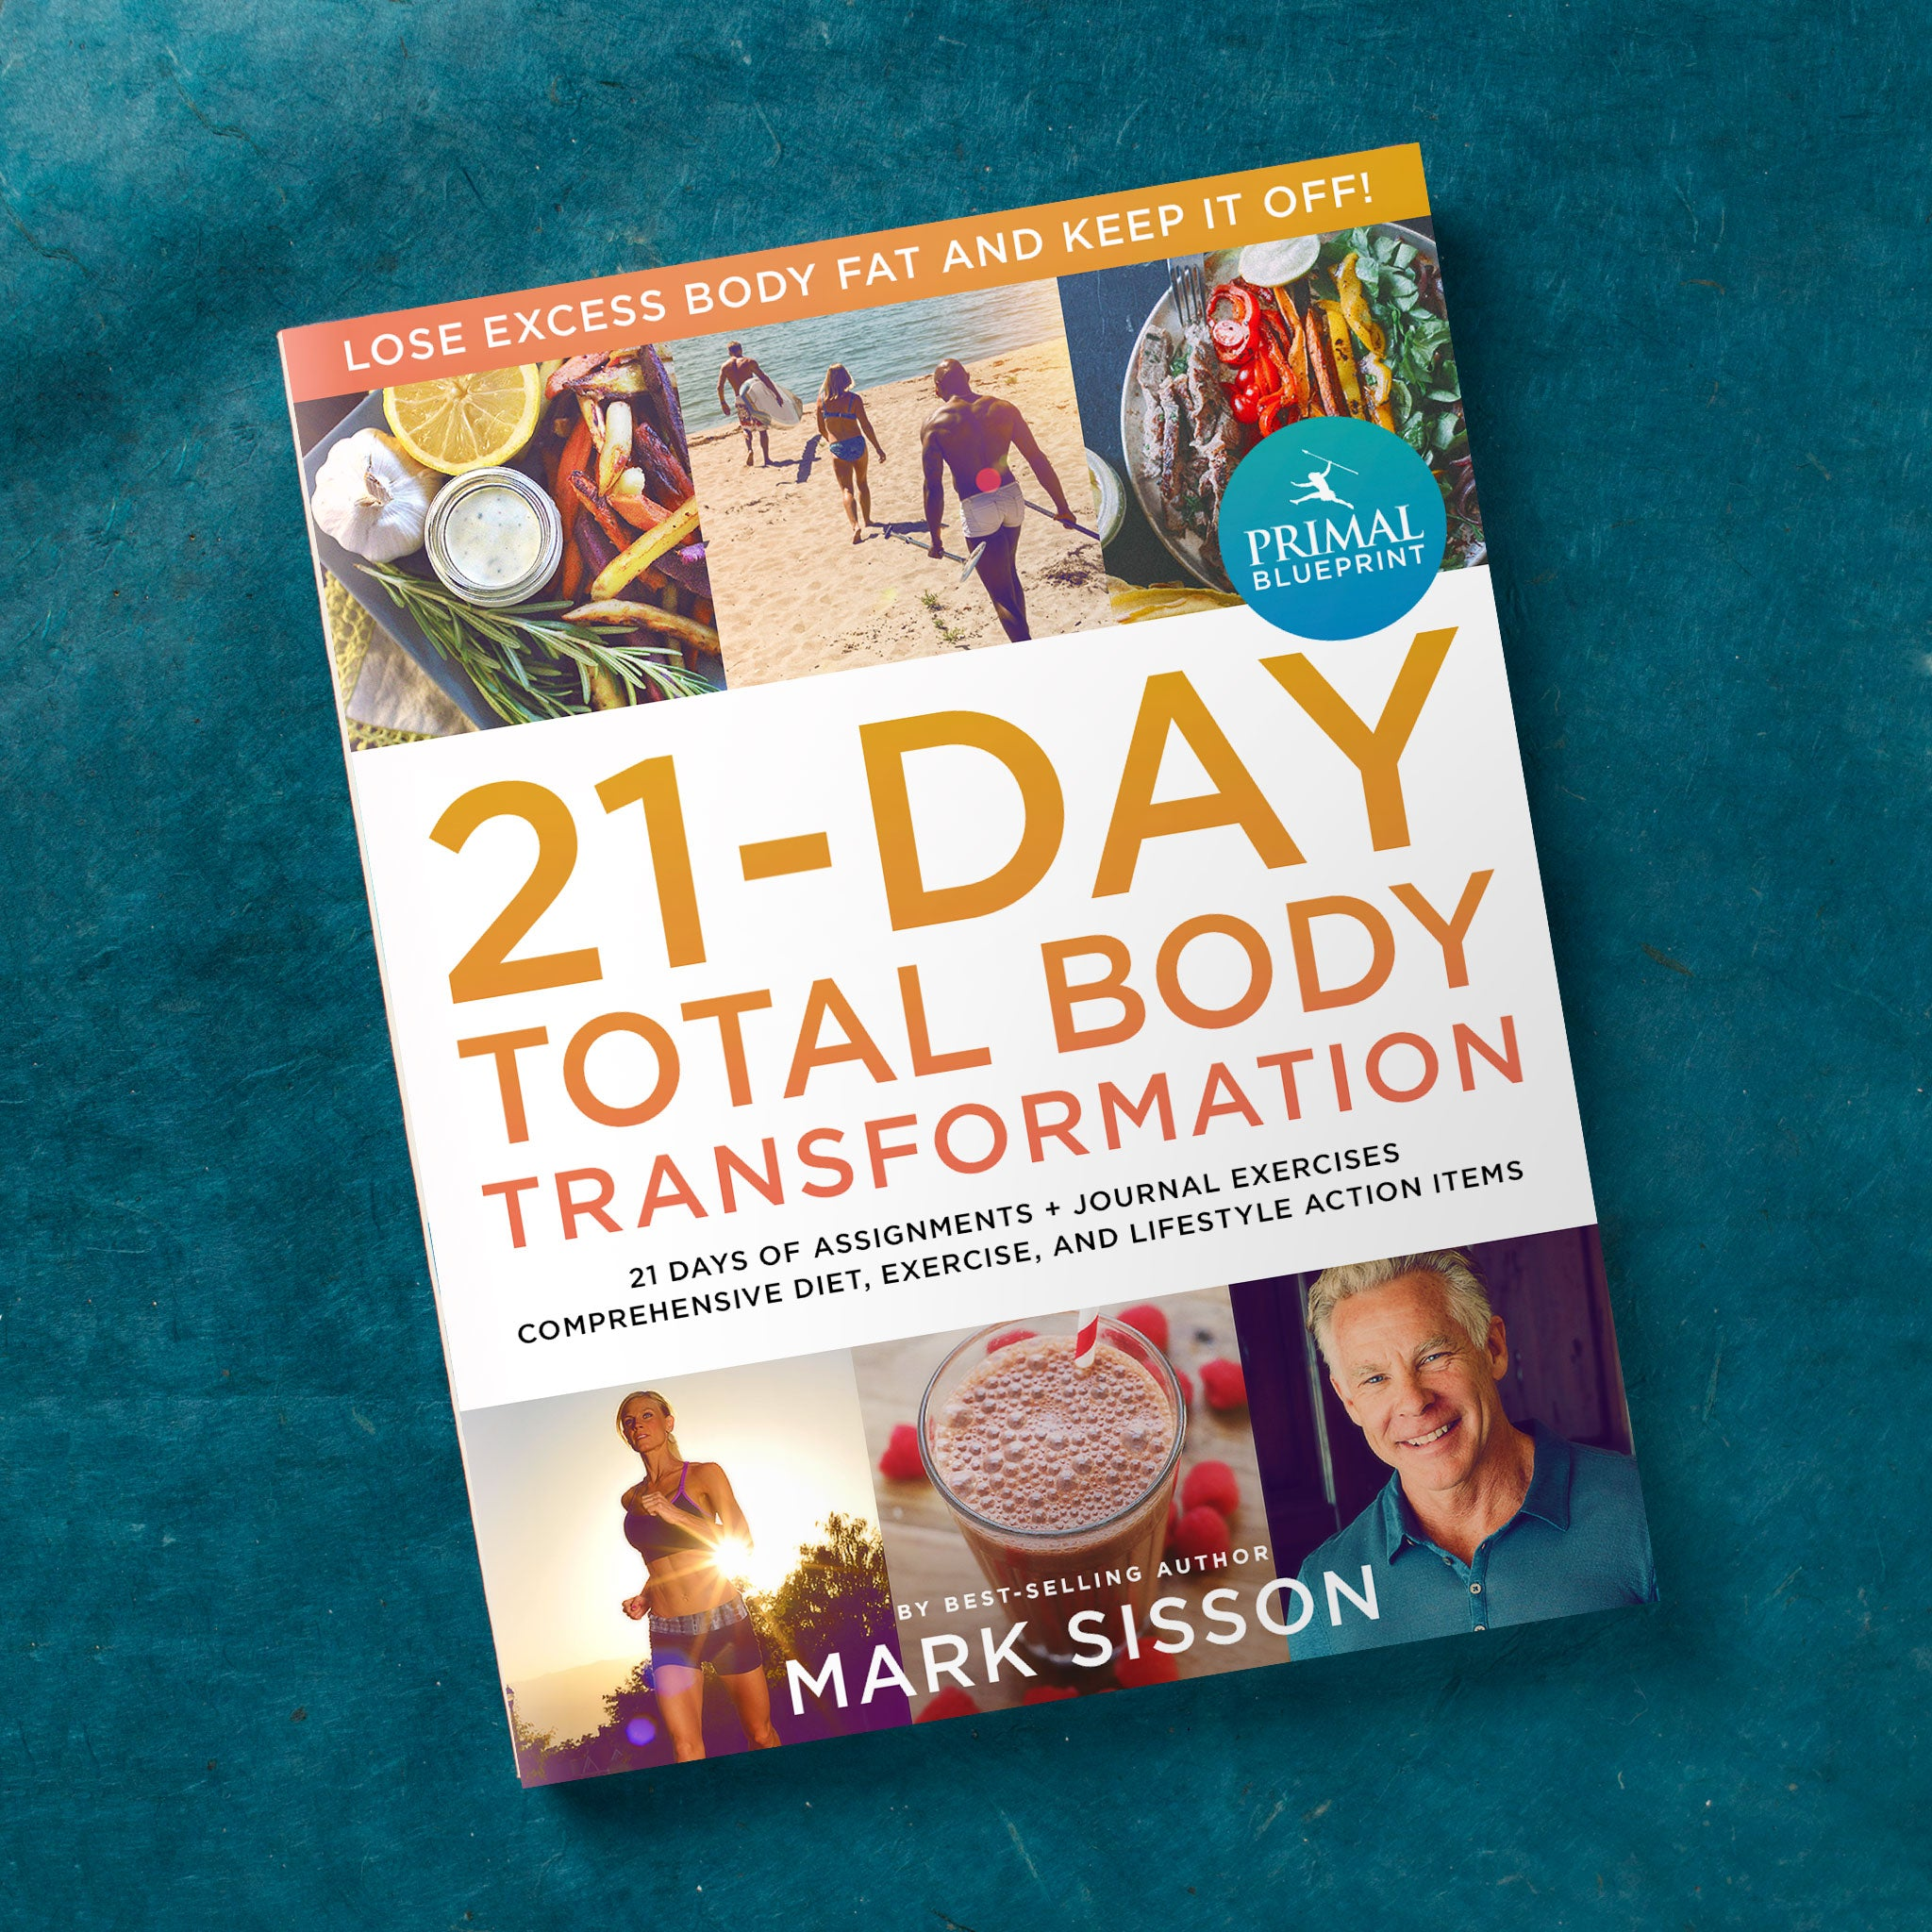 The primal blueprint 21 day total body transformation malvernweather Images